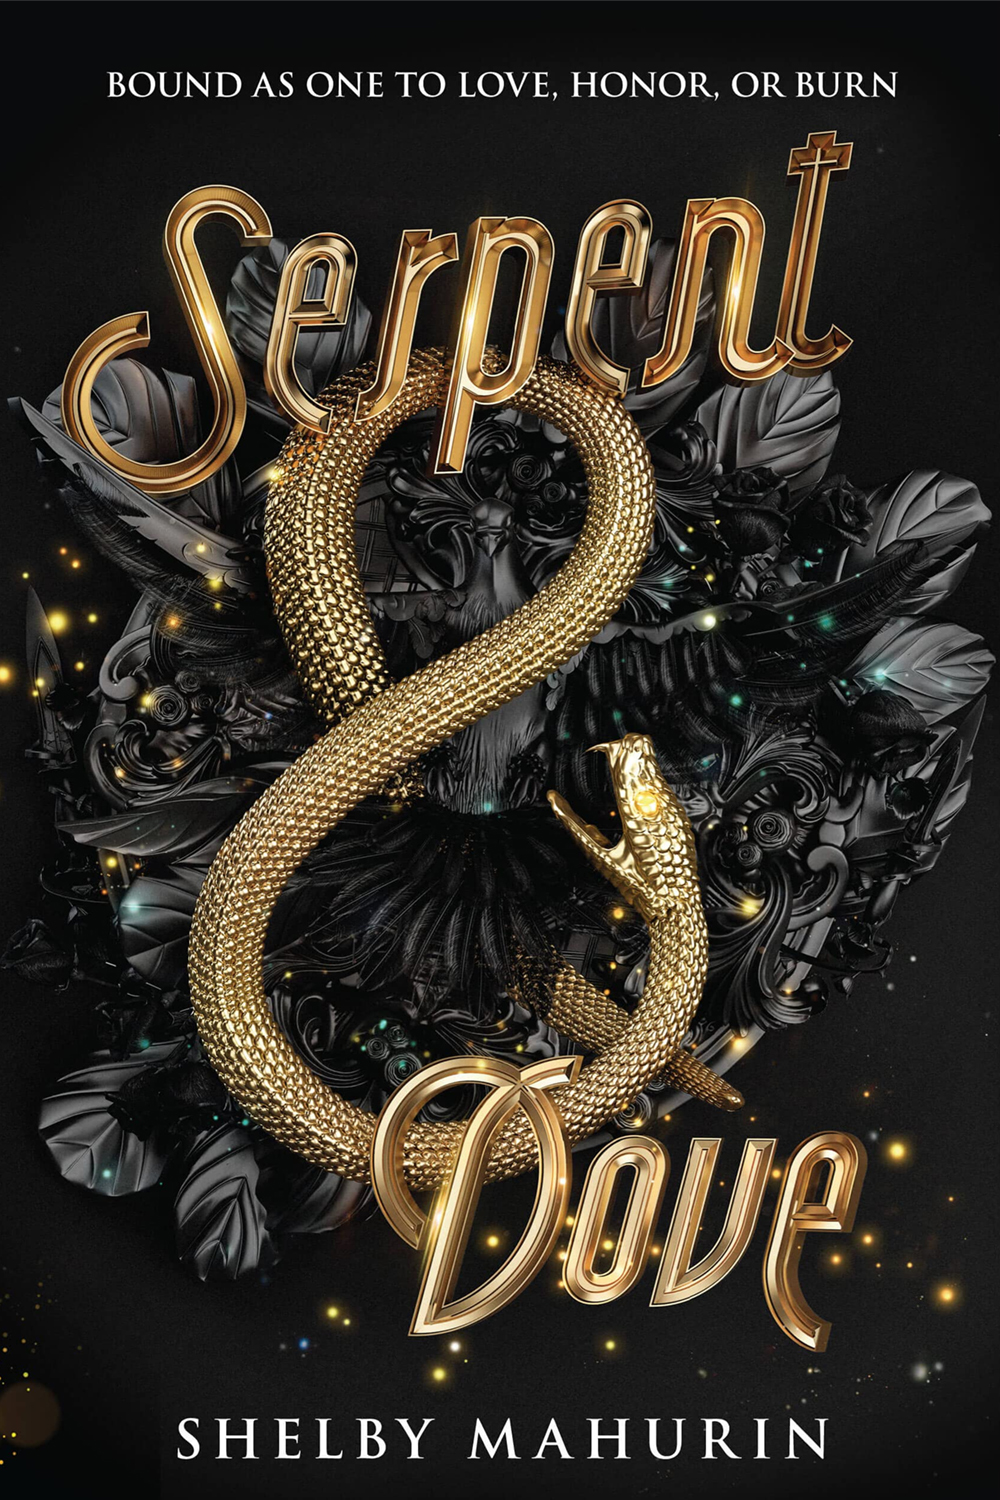 S1 E23 Serpent & Dove by Shelby Mahurin